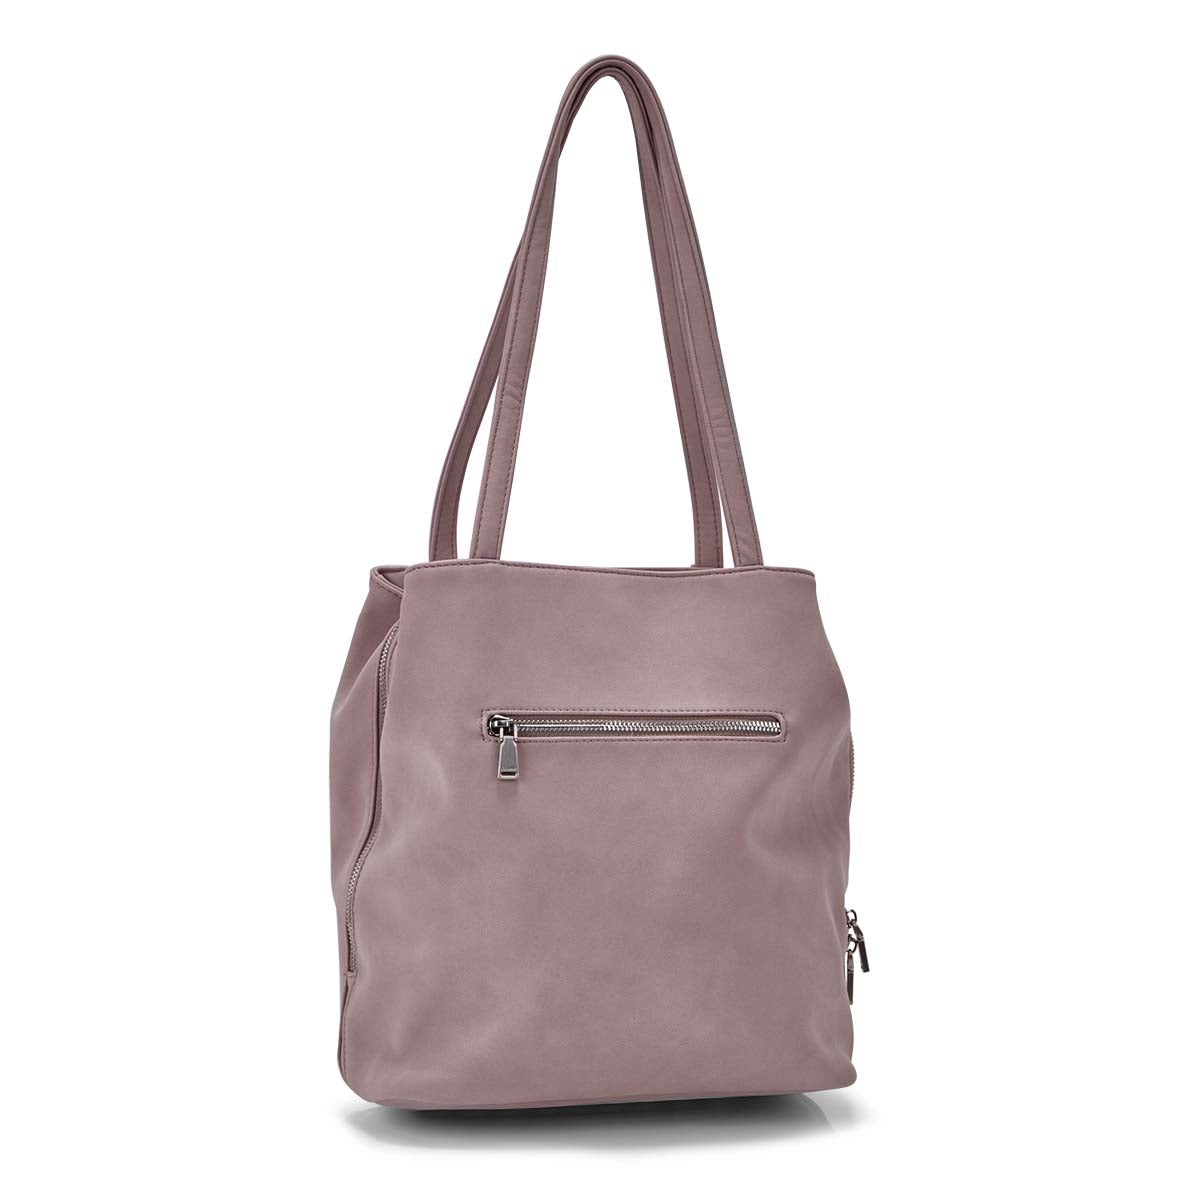 Women's SOHO dusty lavender satchel